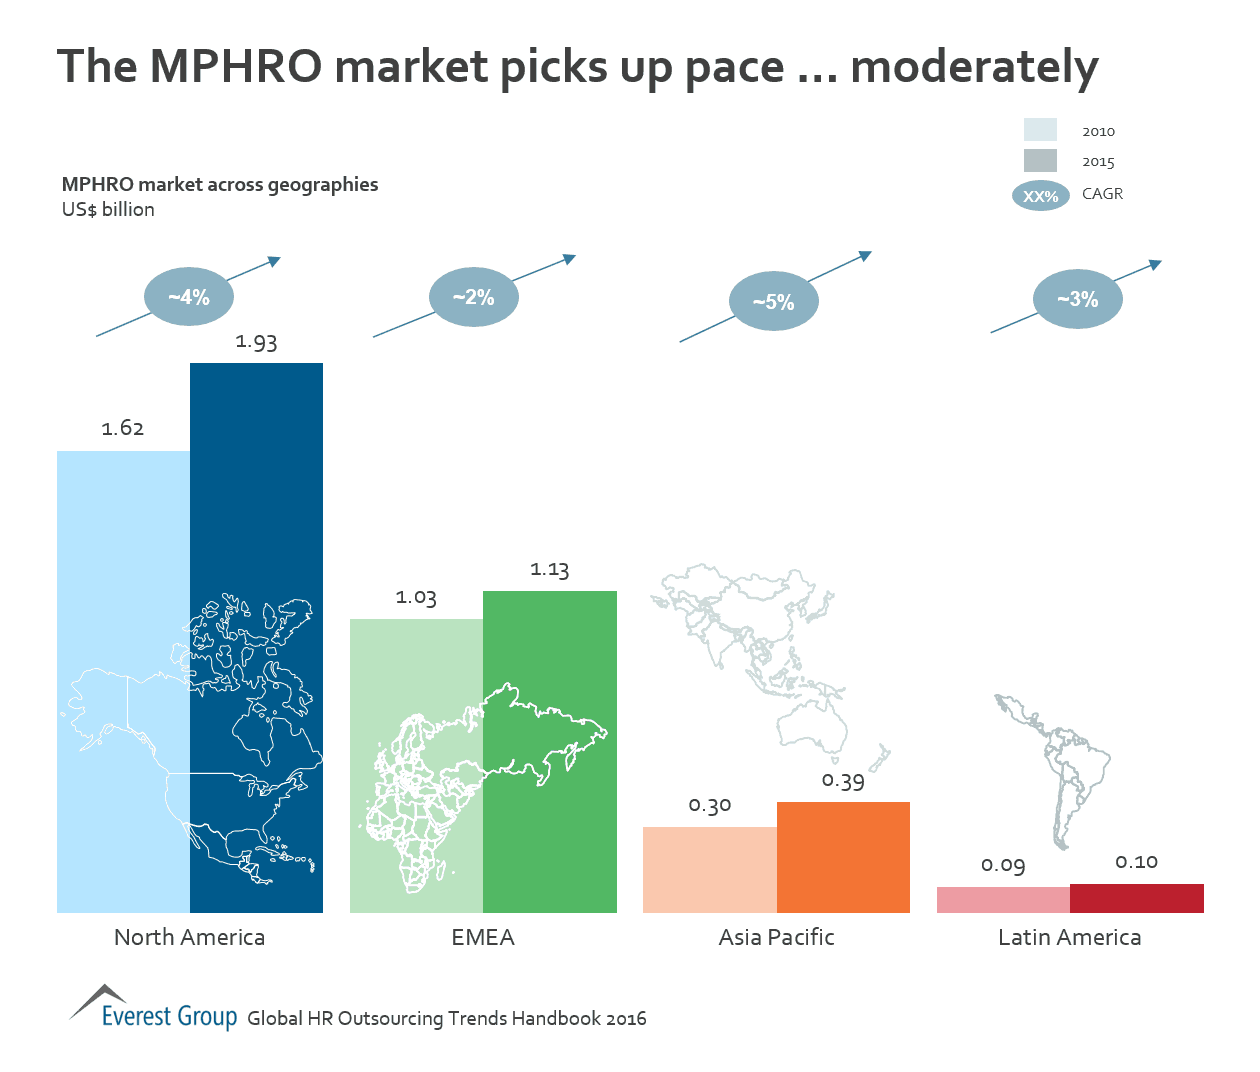 MPHRO growth